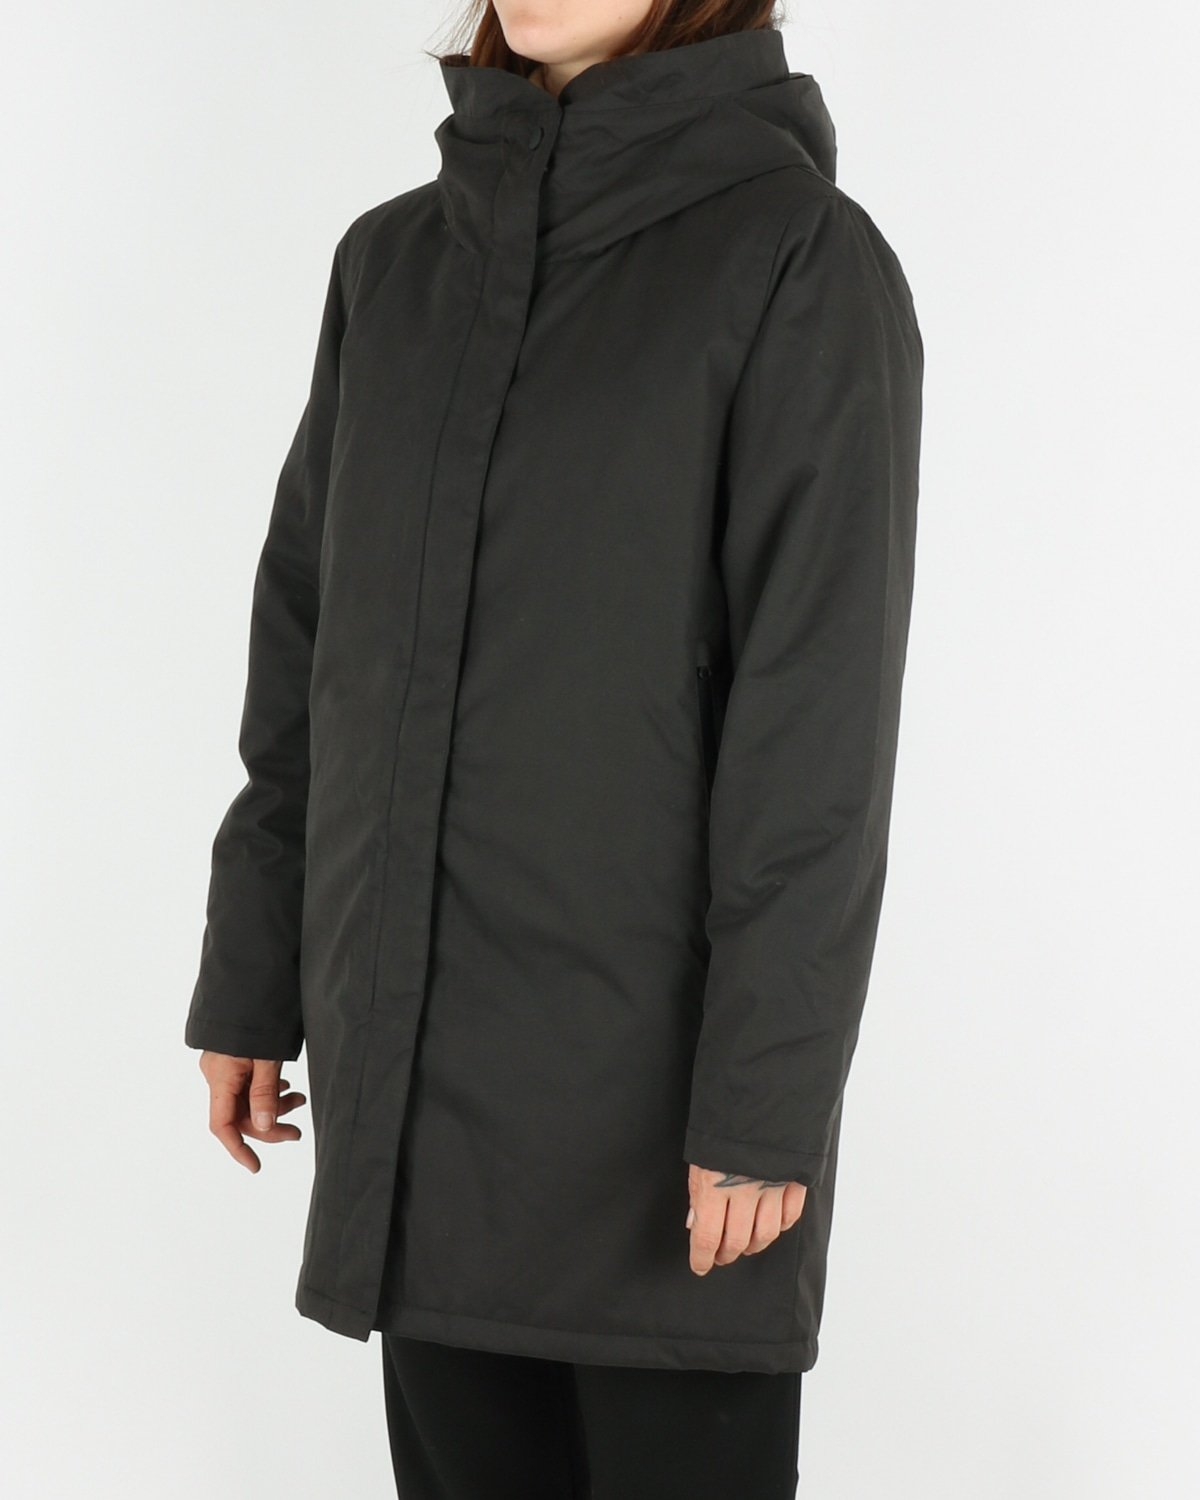 selfhood_parka jacket 77133_black_2_5